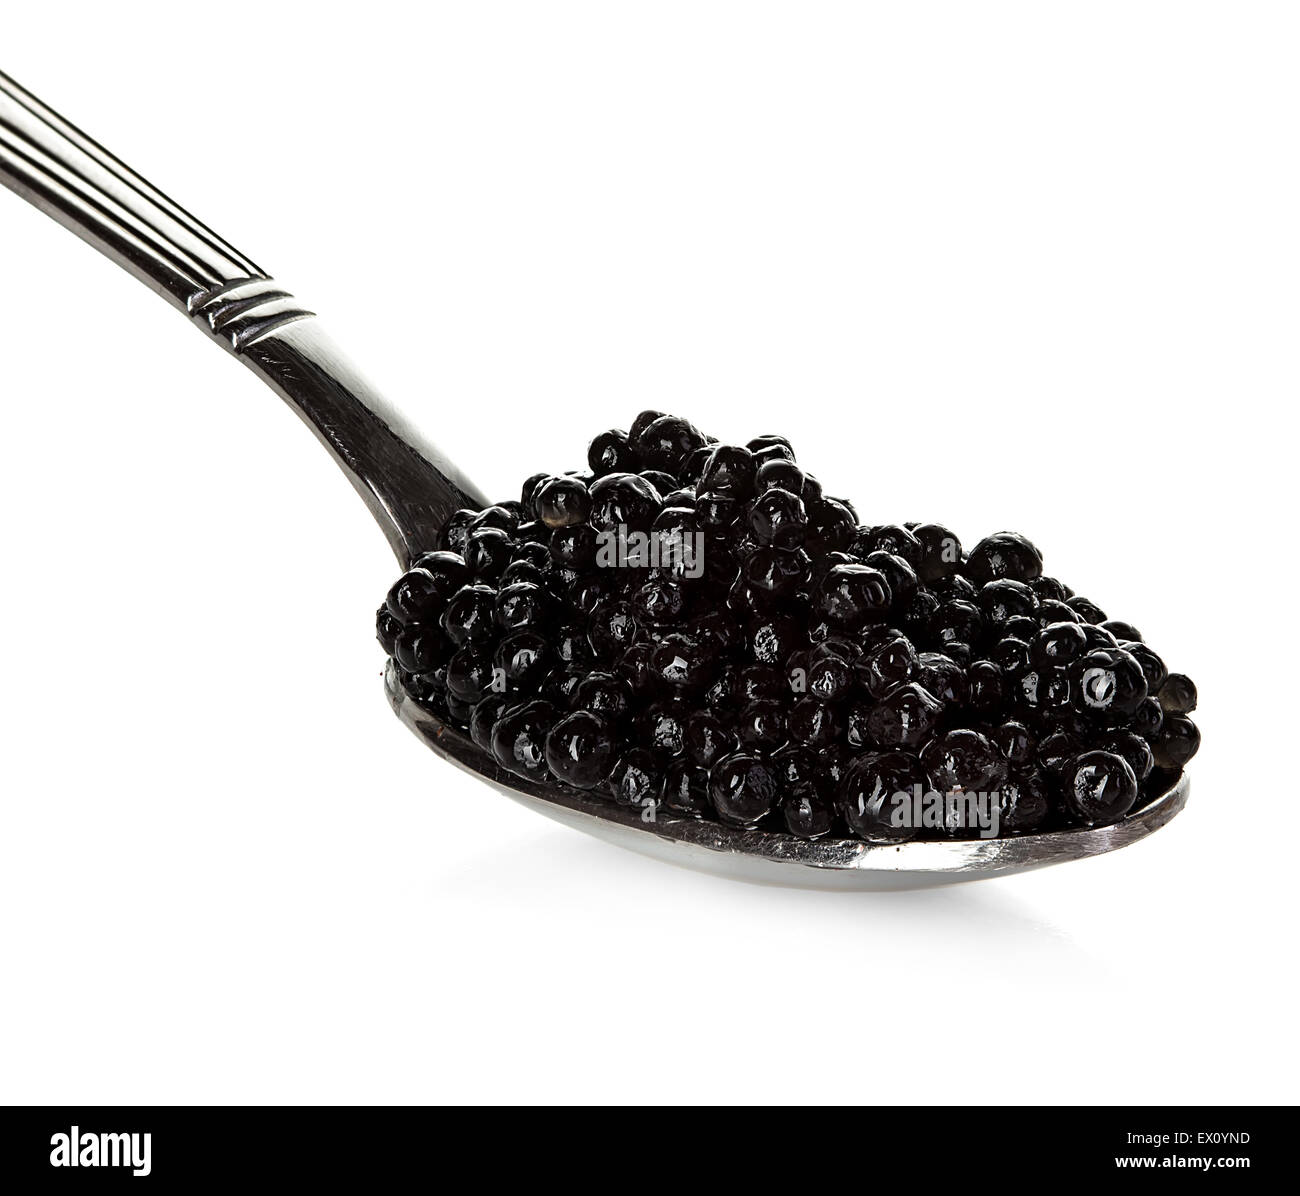 Black caviar in a spoon isolated on white background - Stock Image